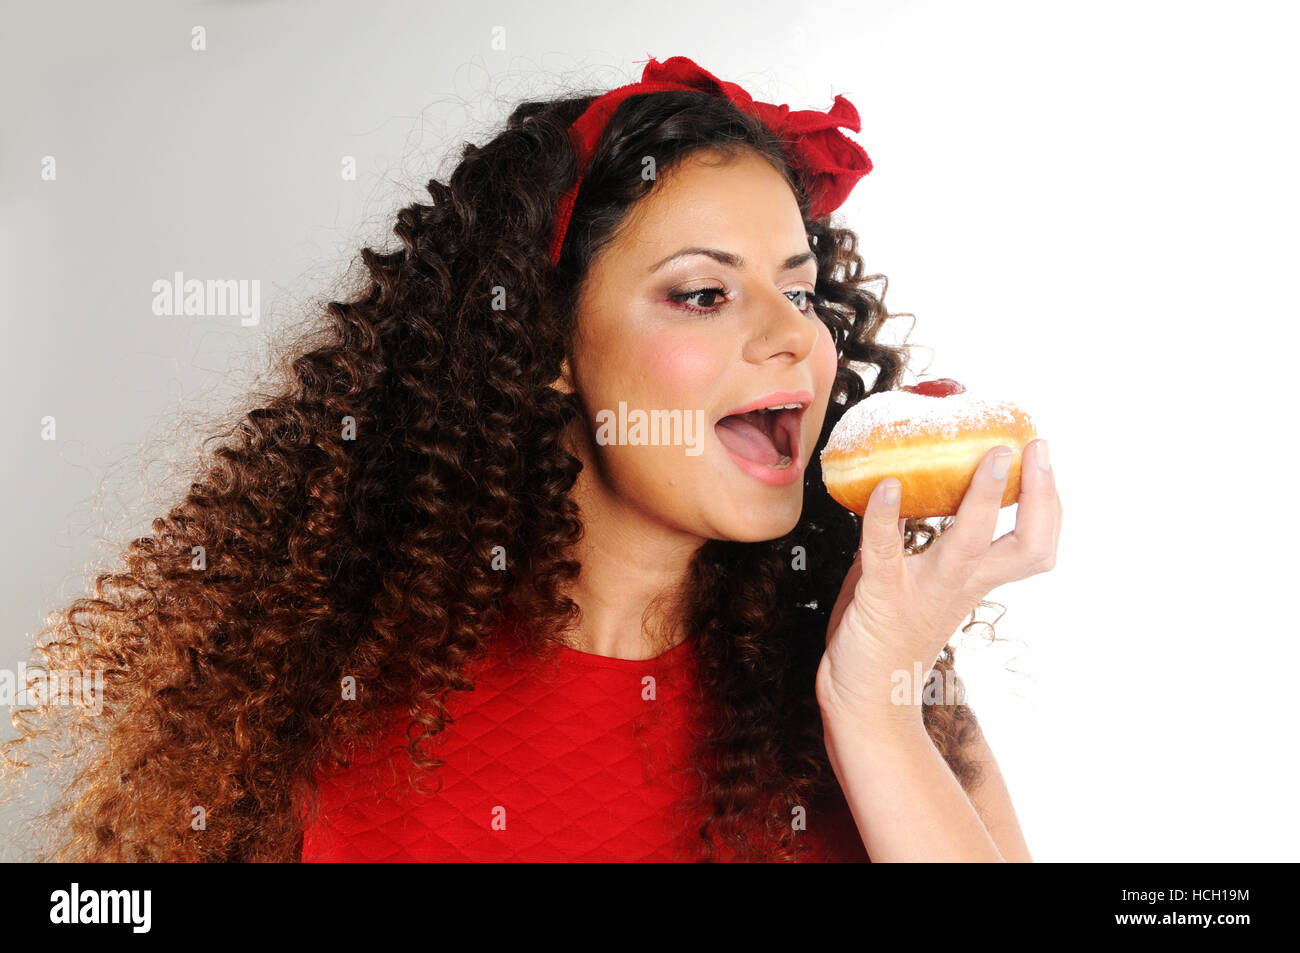 woman with Hanukkah  donuts - Stock Image